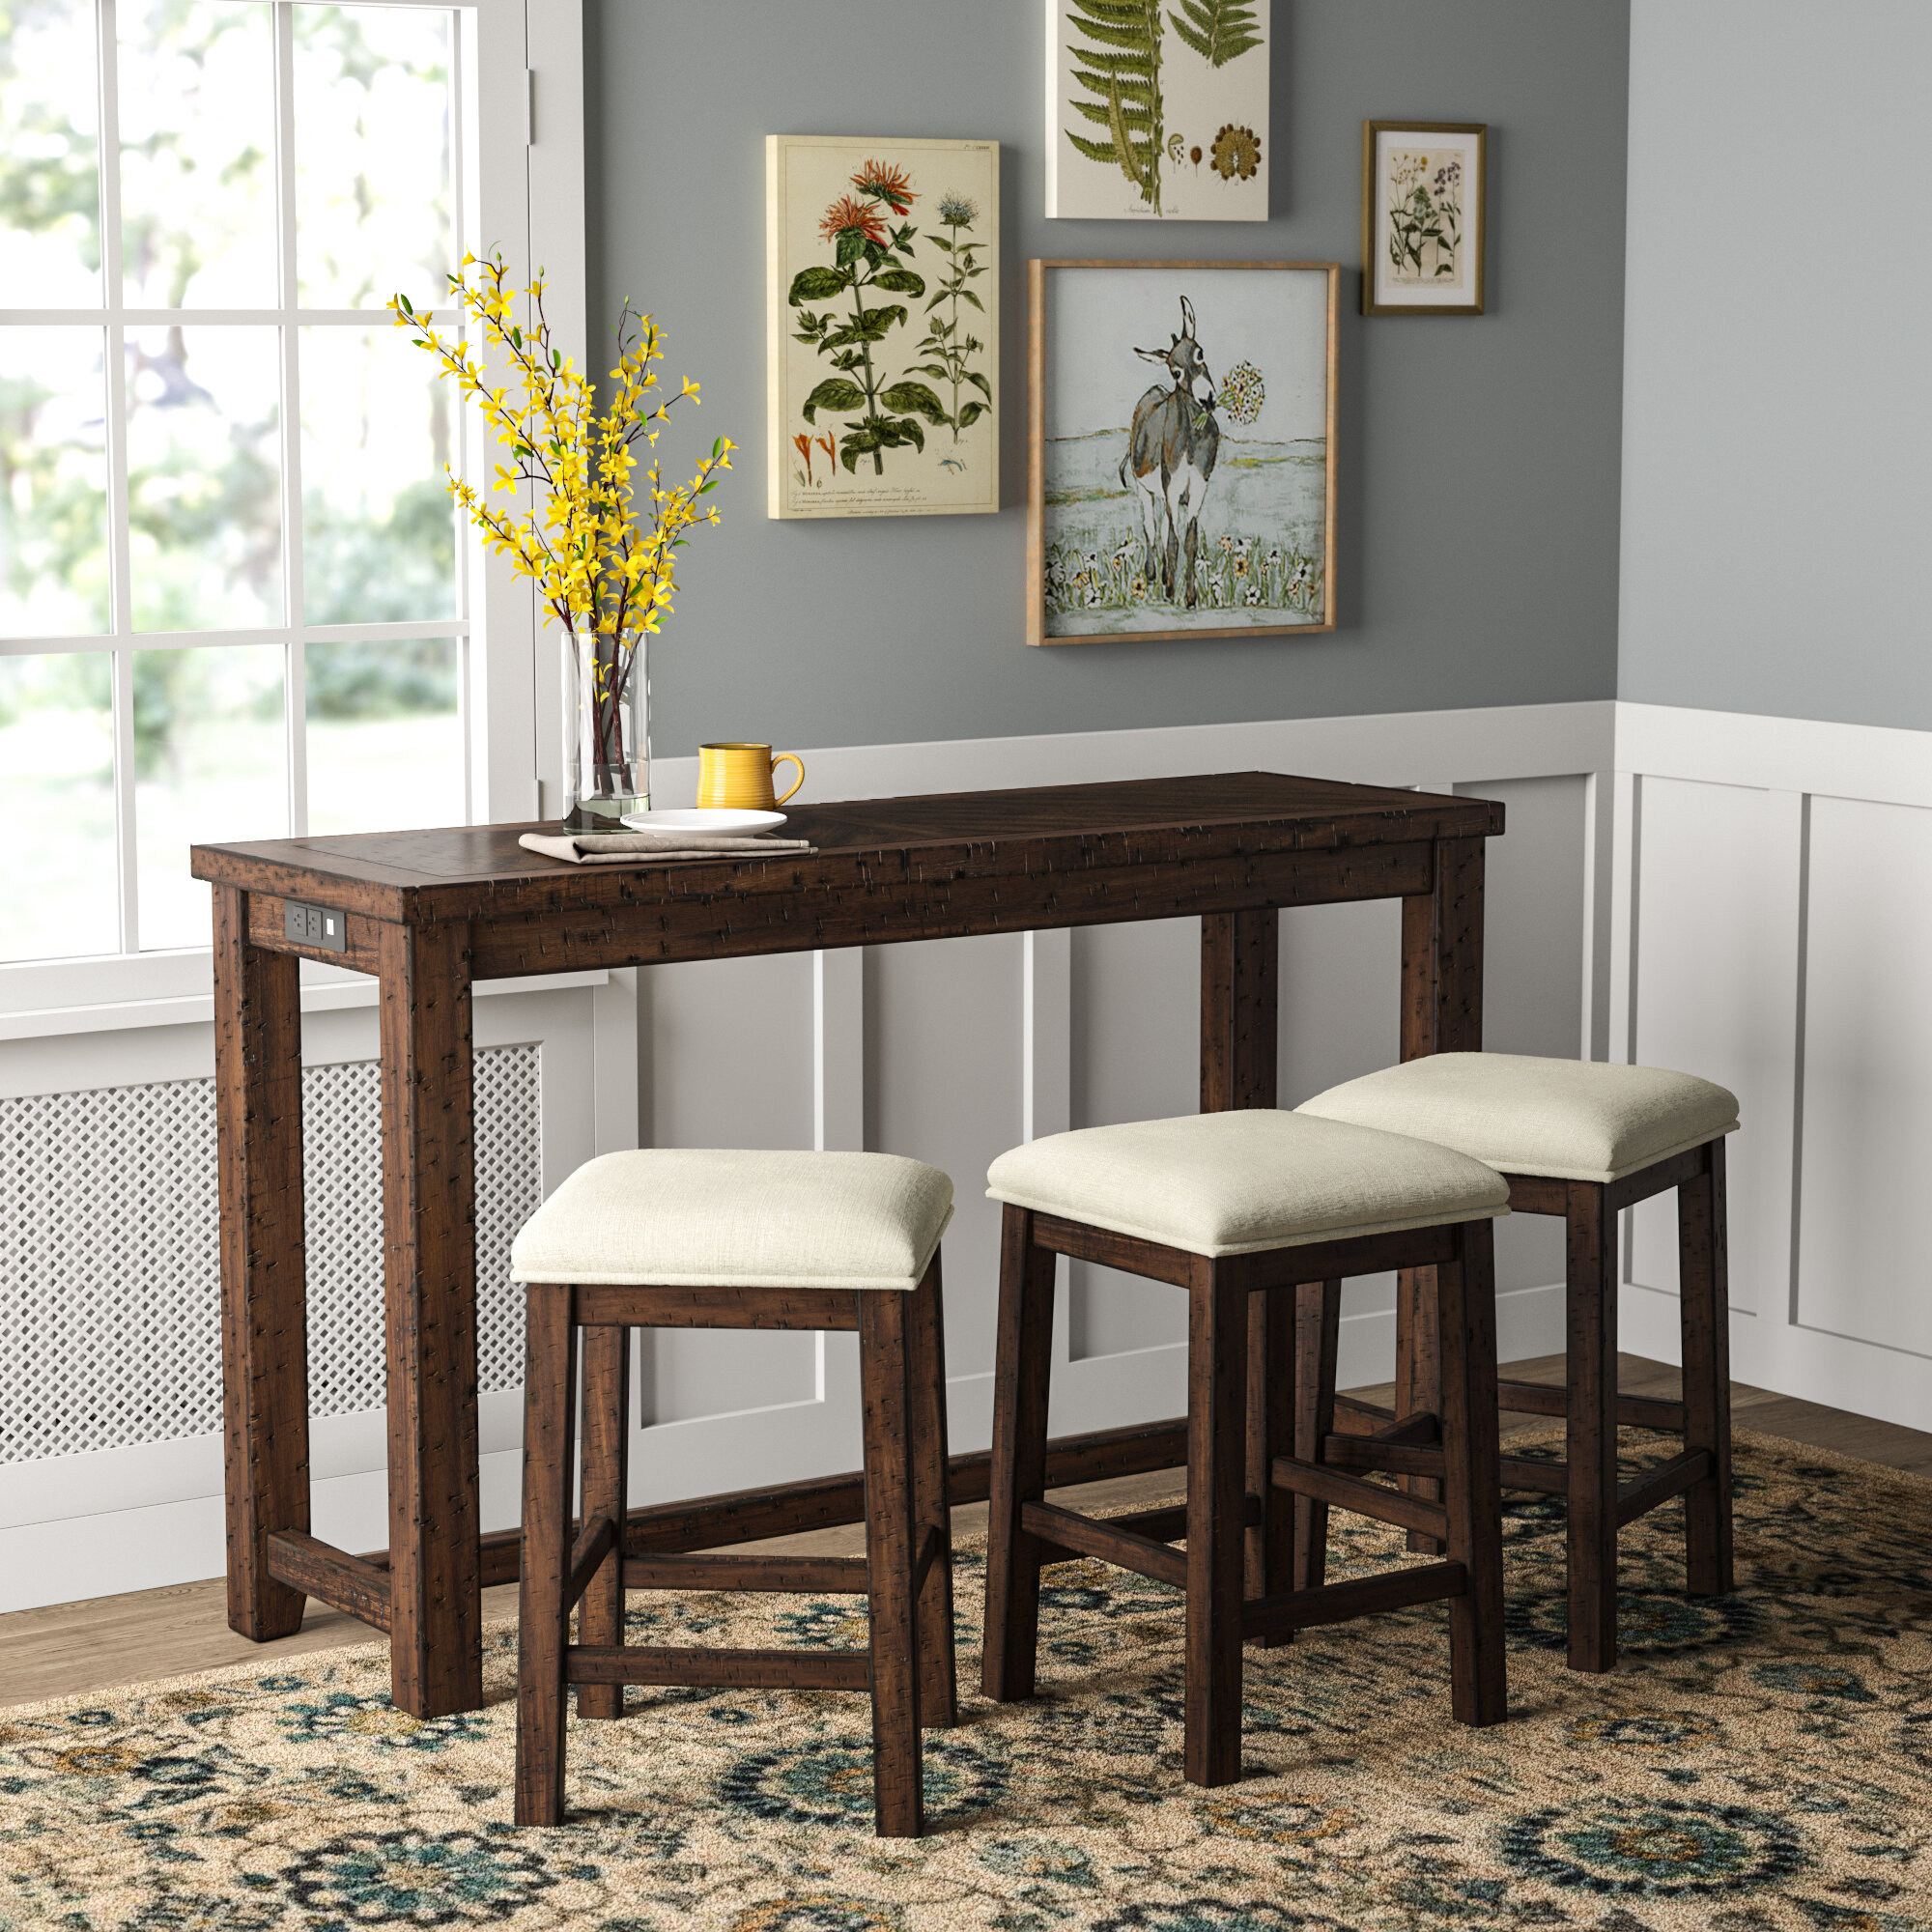 Picture of: Pub Table Black Breakfast Bar Stool Dining Set Marble Top Faux Leather Seat Wood Home Garden Kitchen Dining Bar Supplies